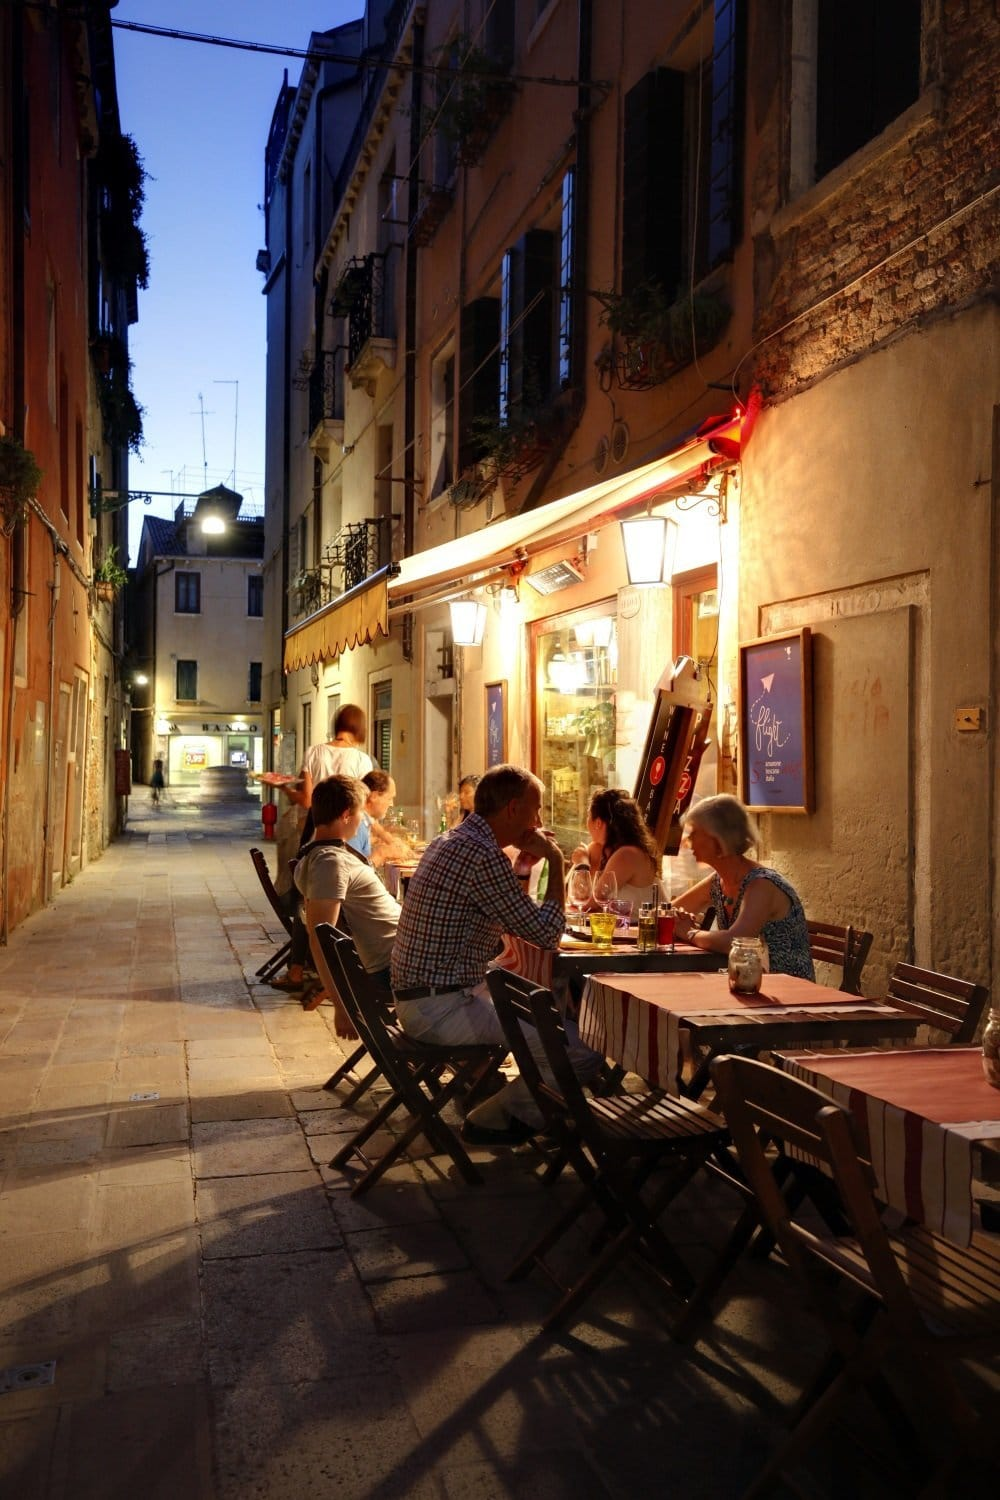 Tables outside in typical calle by night